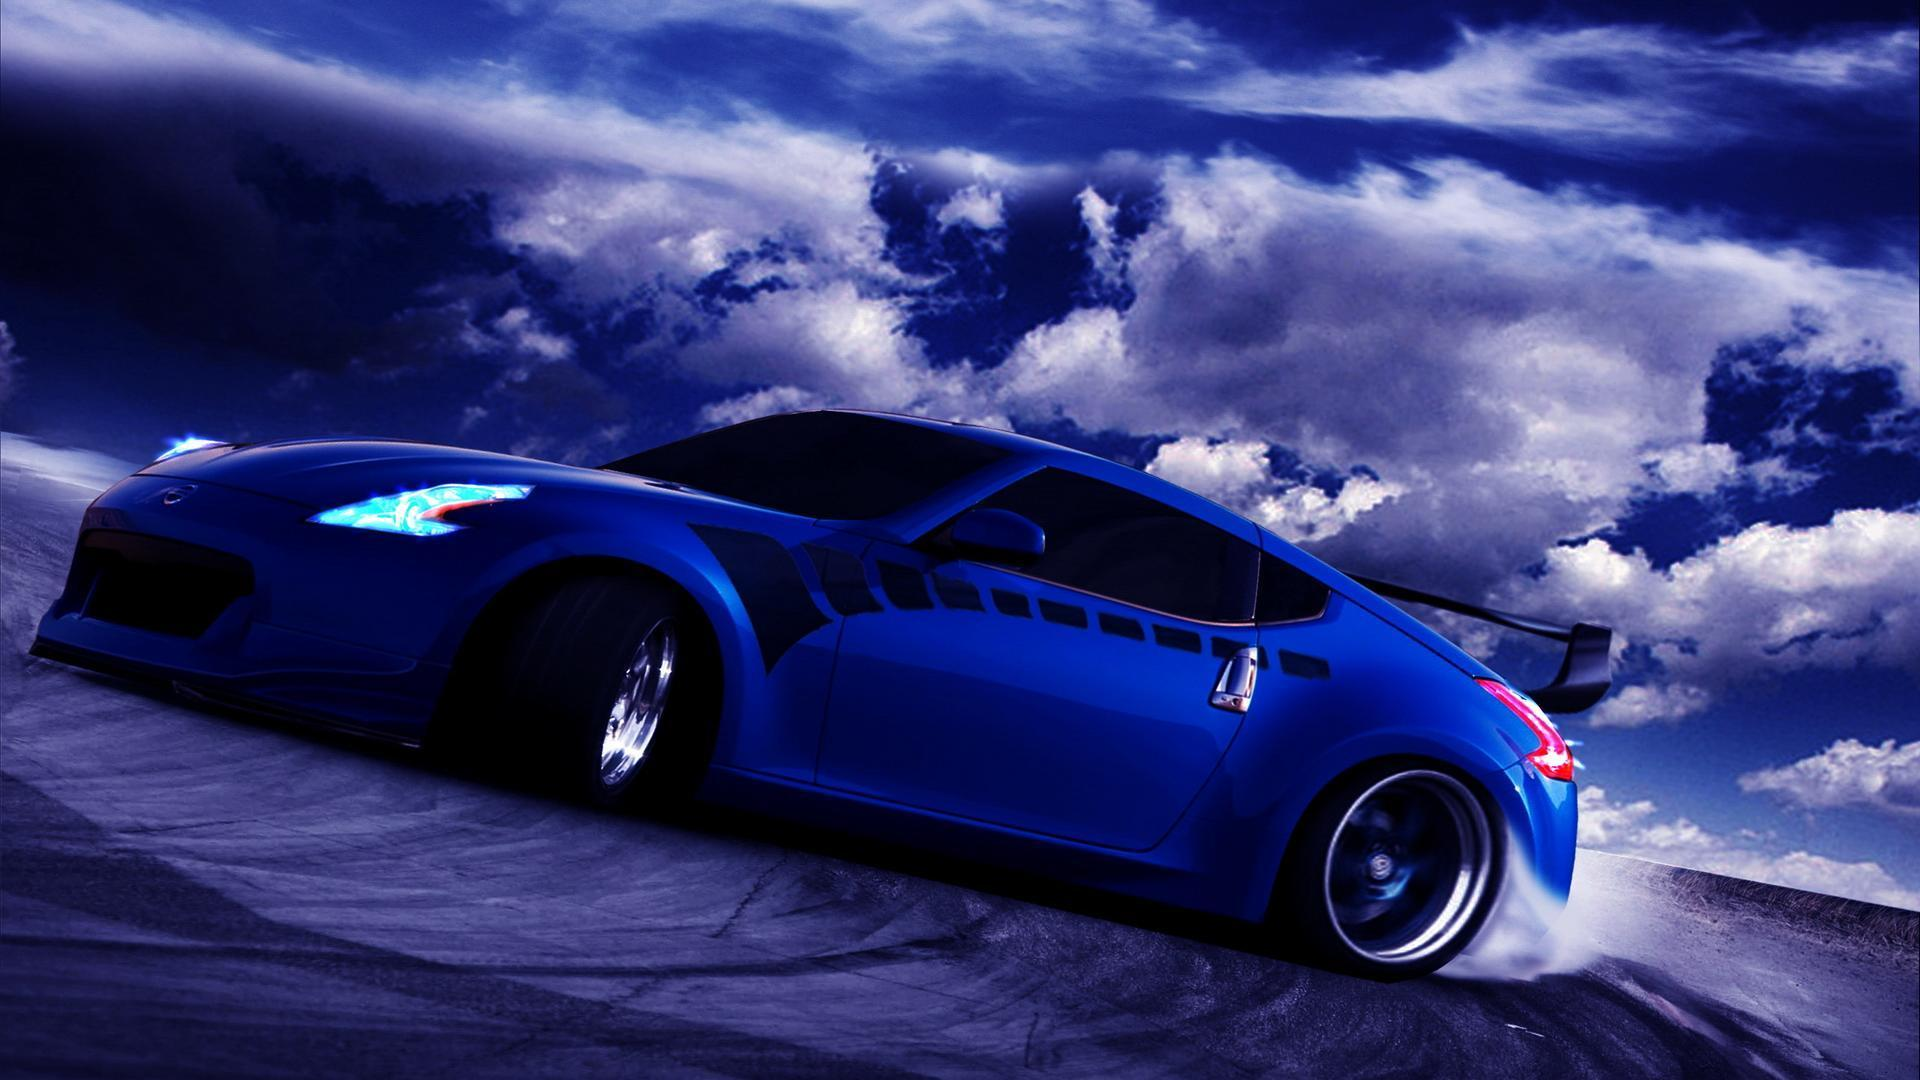 blue car wallpapers wallpaper cave